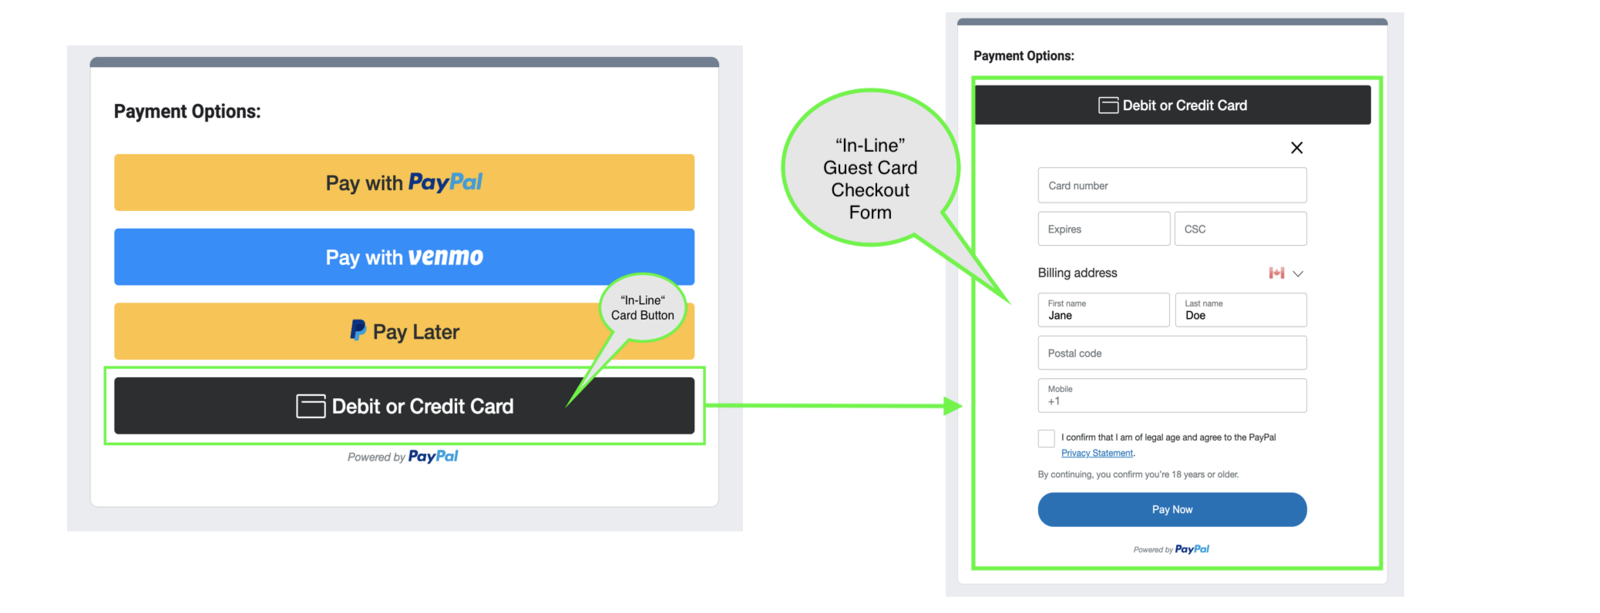 In-Line Guest Card Checkout powered by PayPal